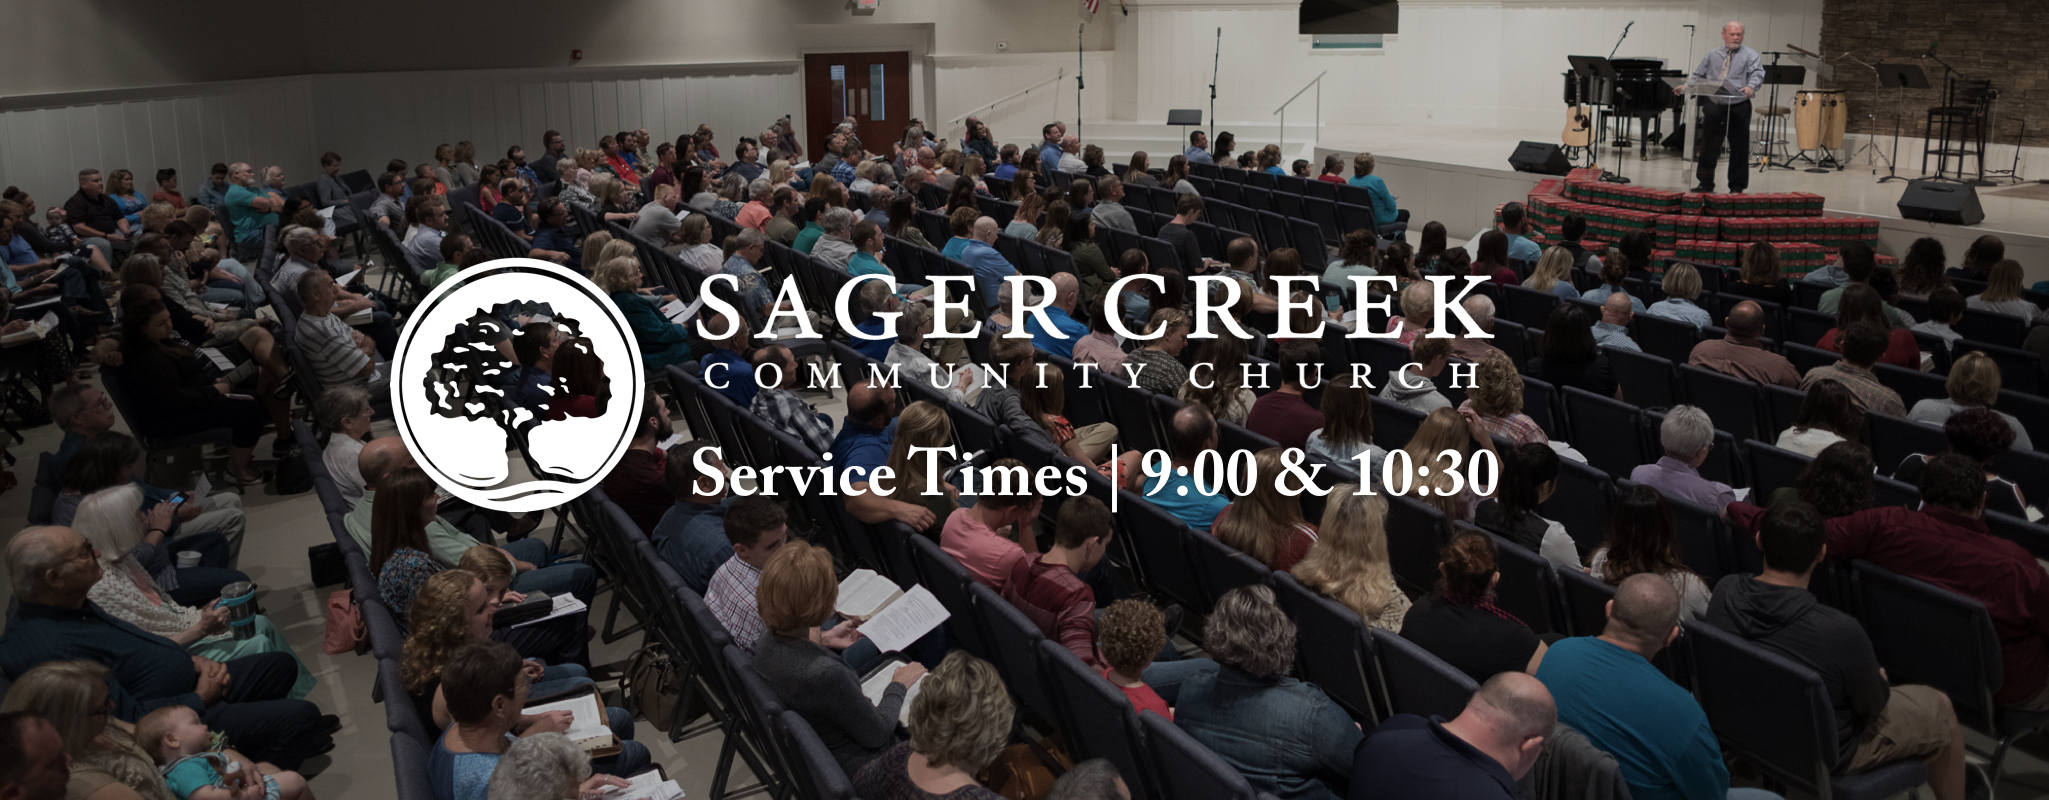 Home | Sager Creek Community Church